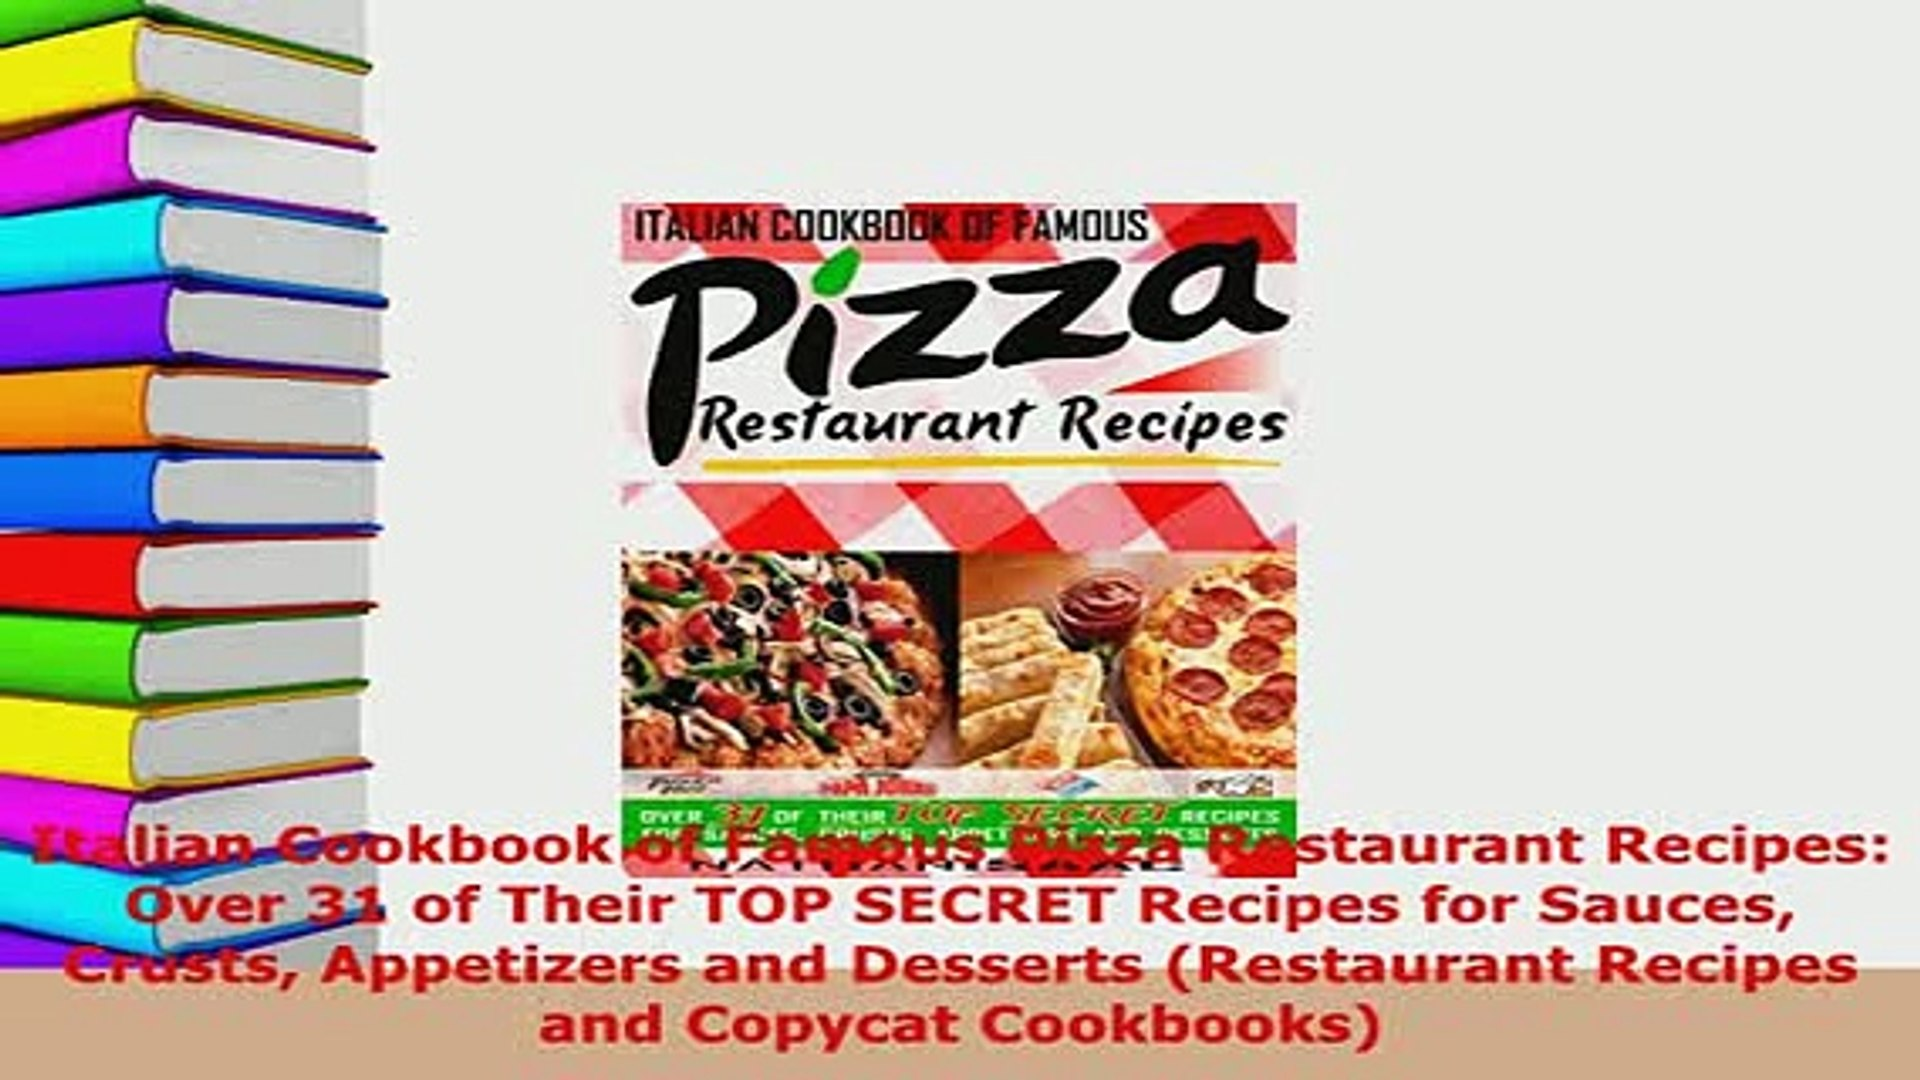 Download Italian Cookbook Of Famous Pizza Restaurant Recipes Over 31 Of Their Top Secret Recipes Read Full Ebook